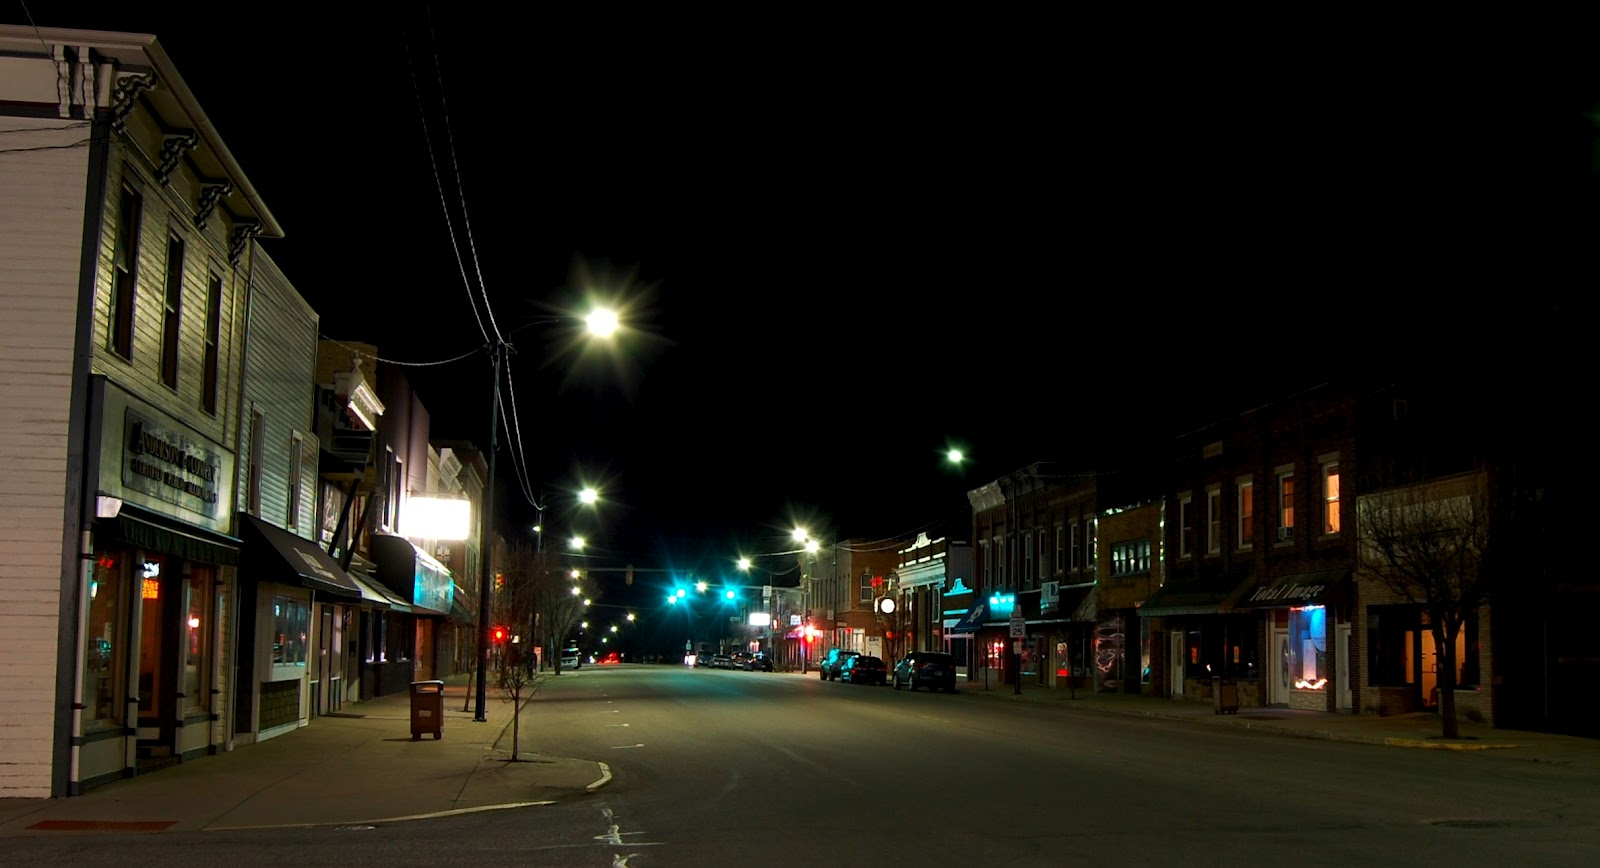 Car City South Bend >> Keith Board Photography: Bremen, Indiana at Night